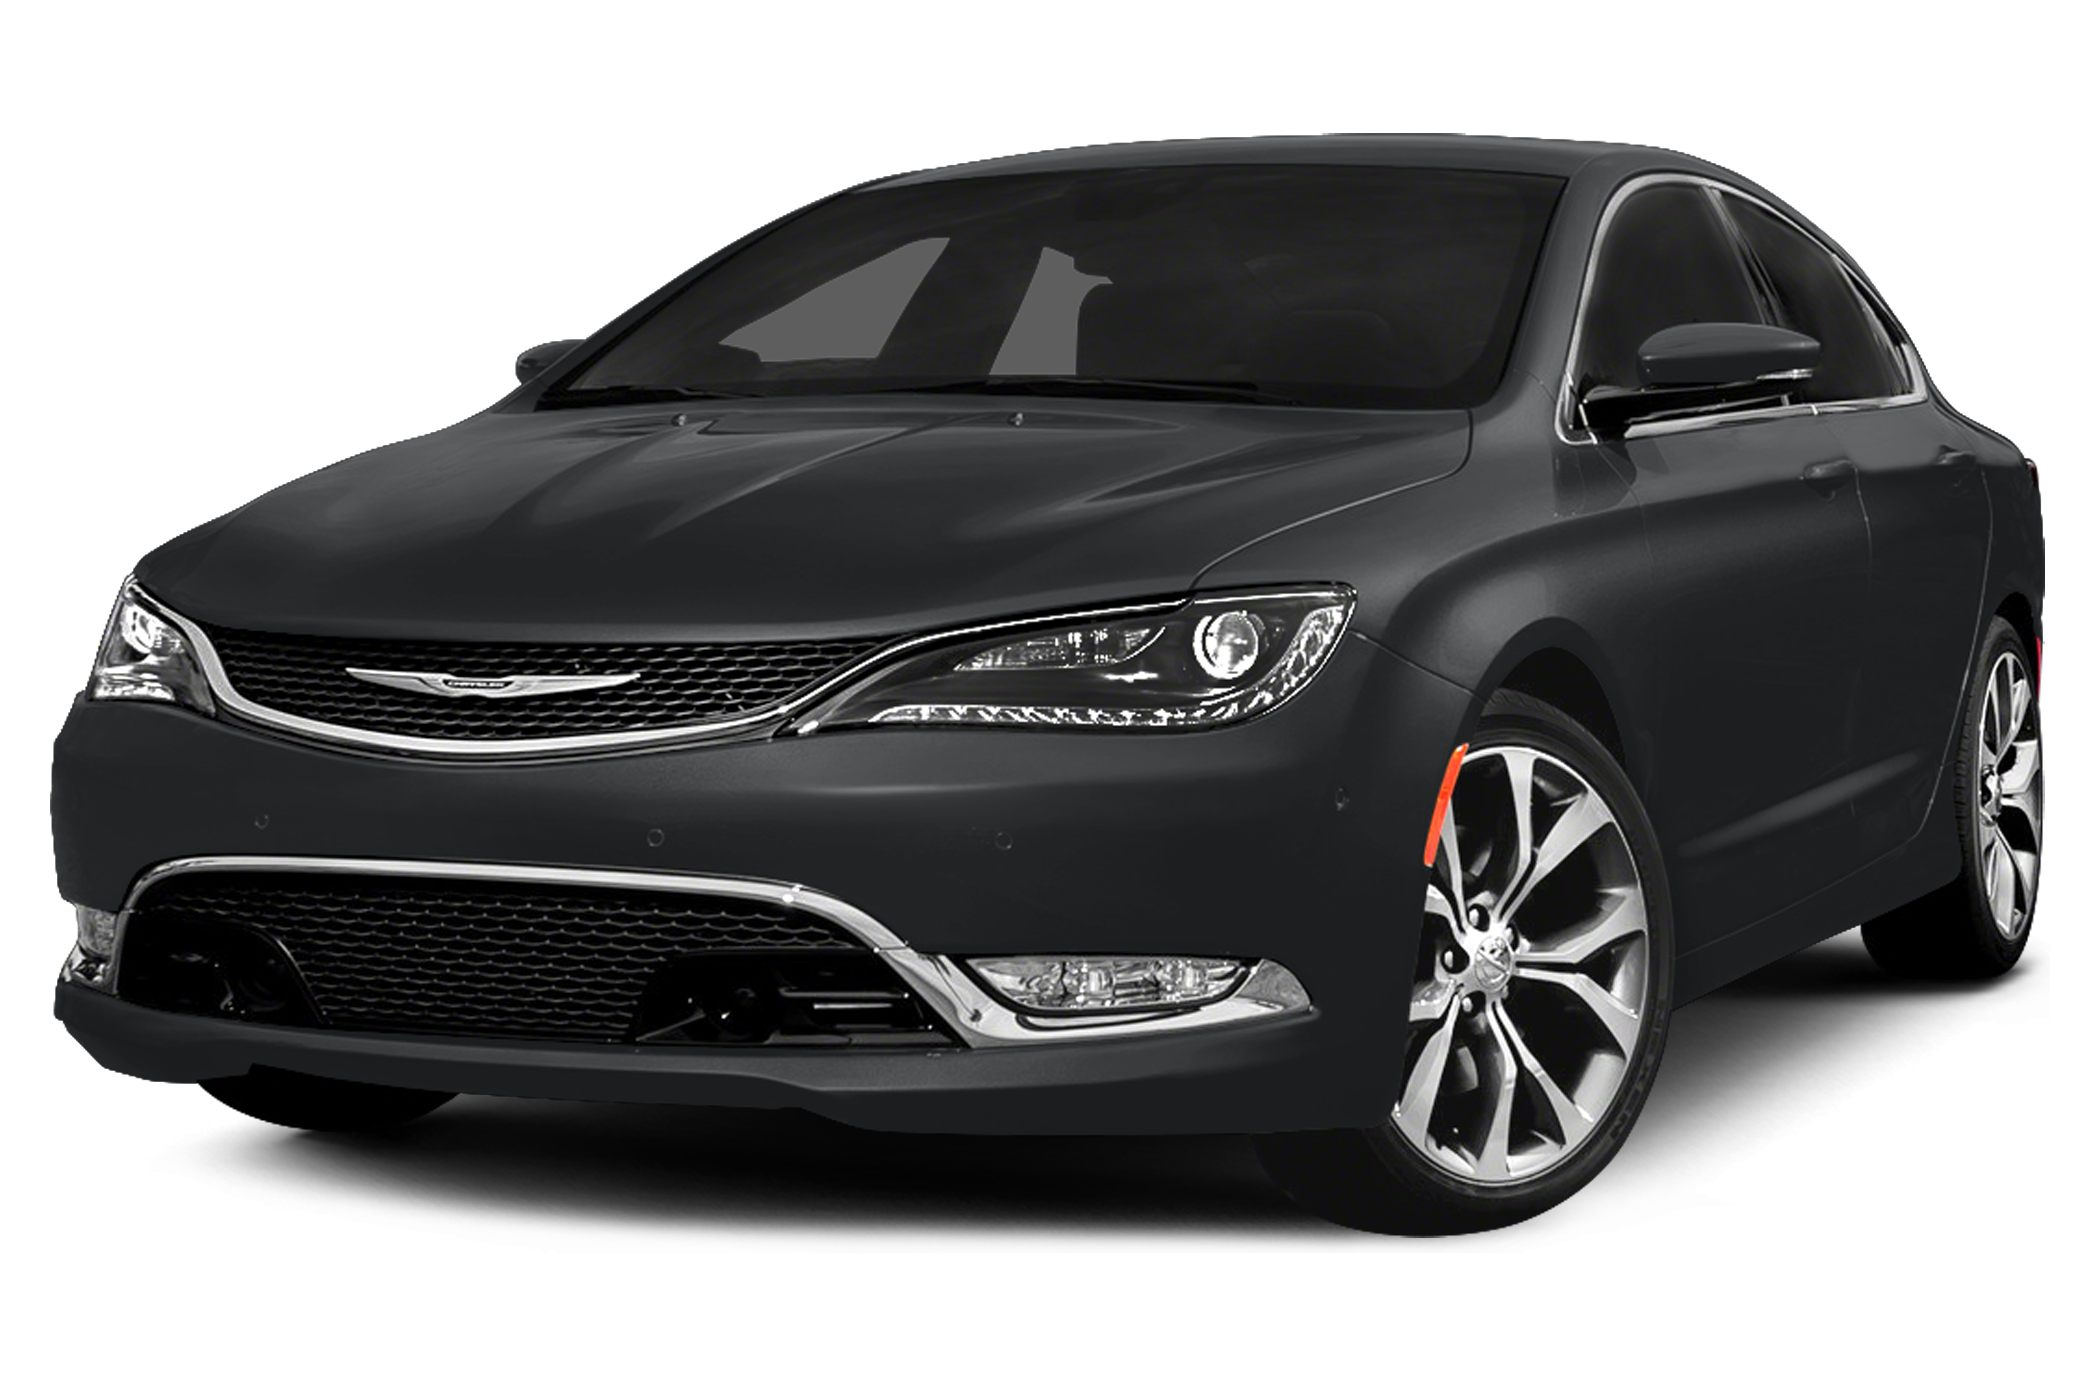 2015 Chrysler 200 Limited Sedan for sale in Aberdeen for $21,470 with 0 miles.